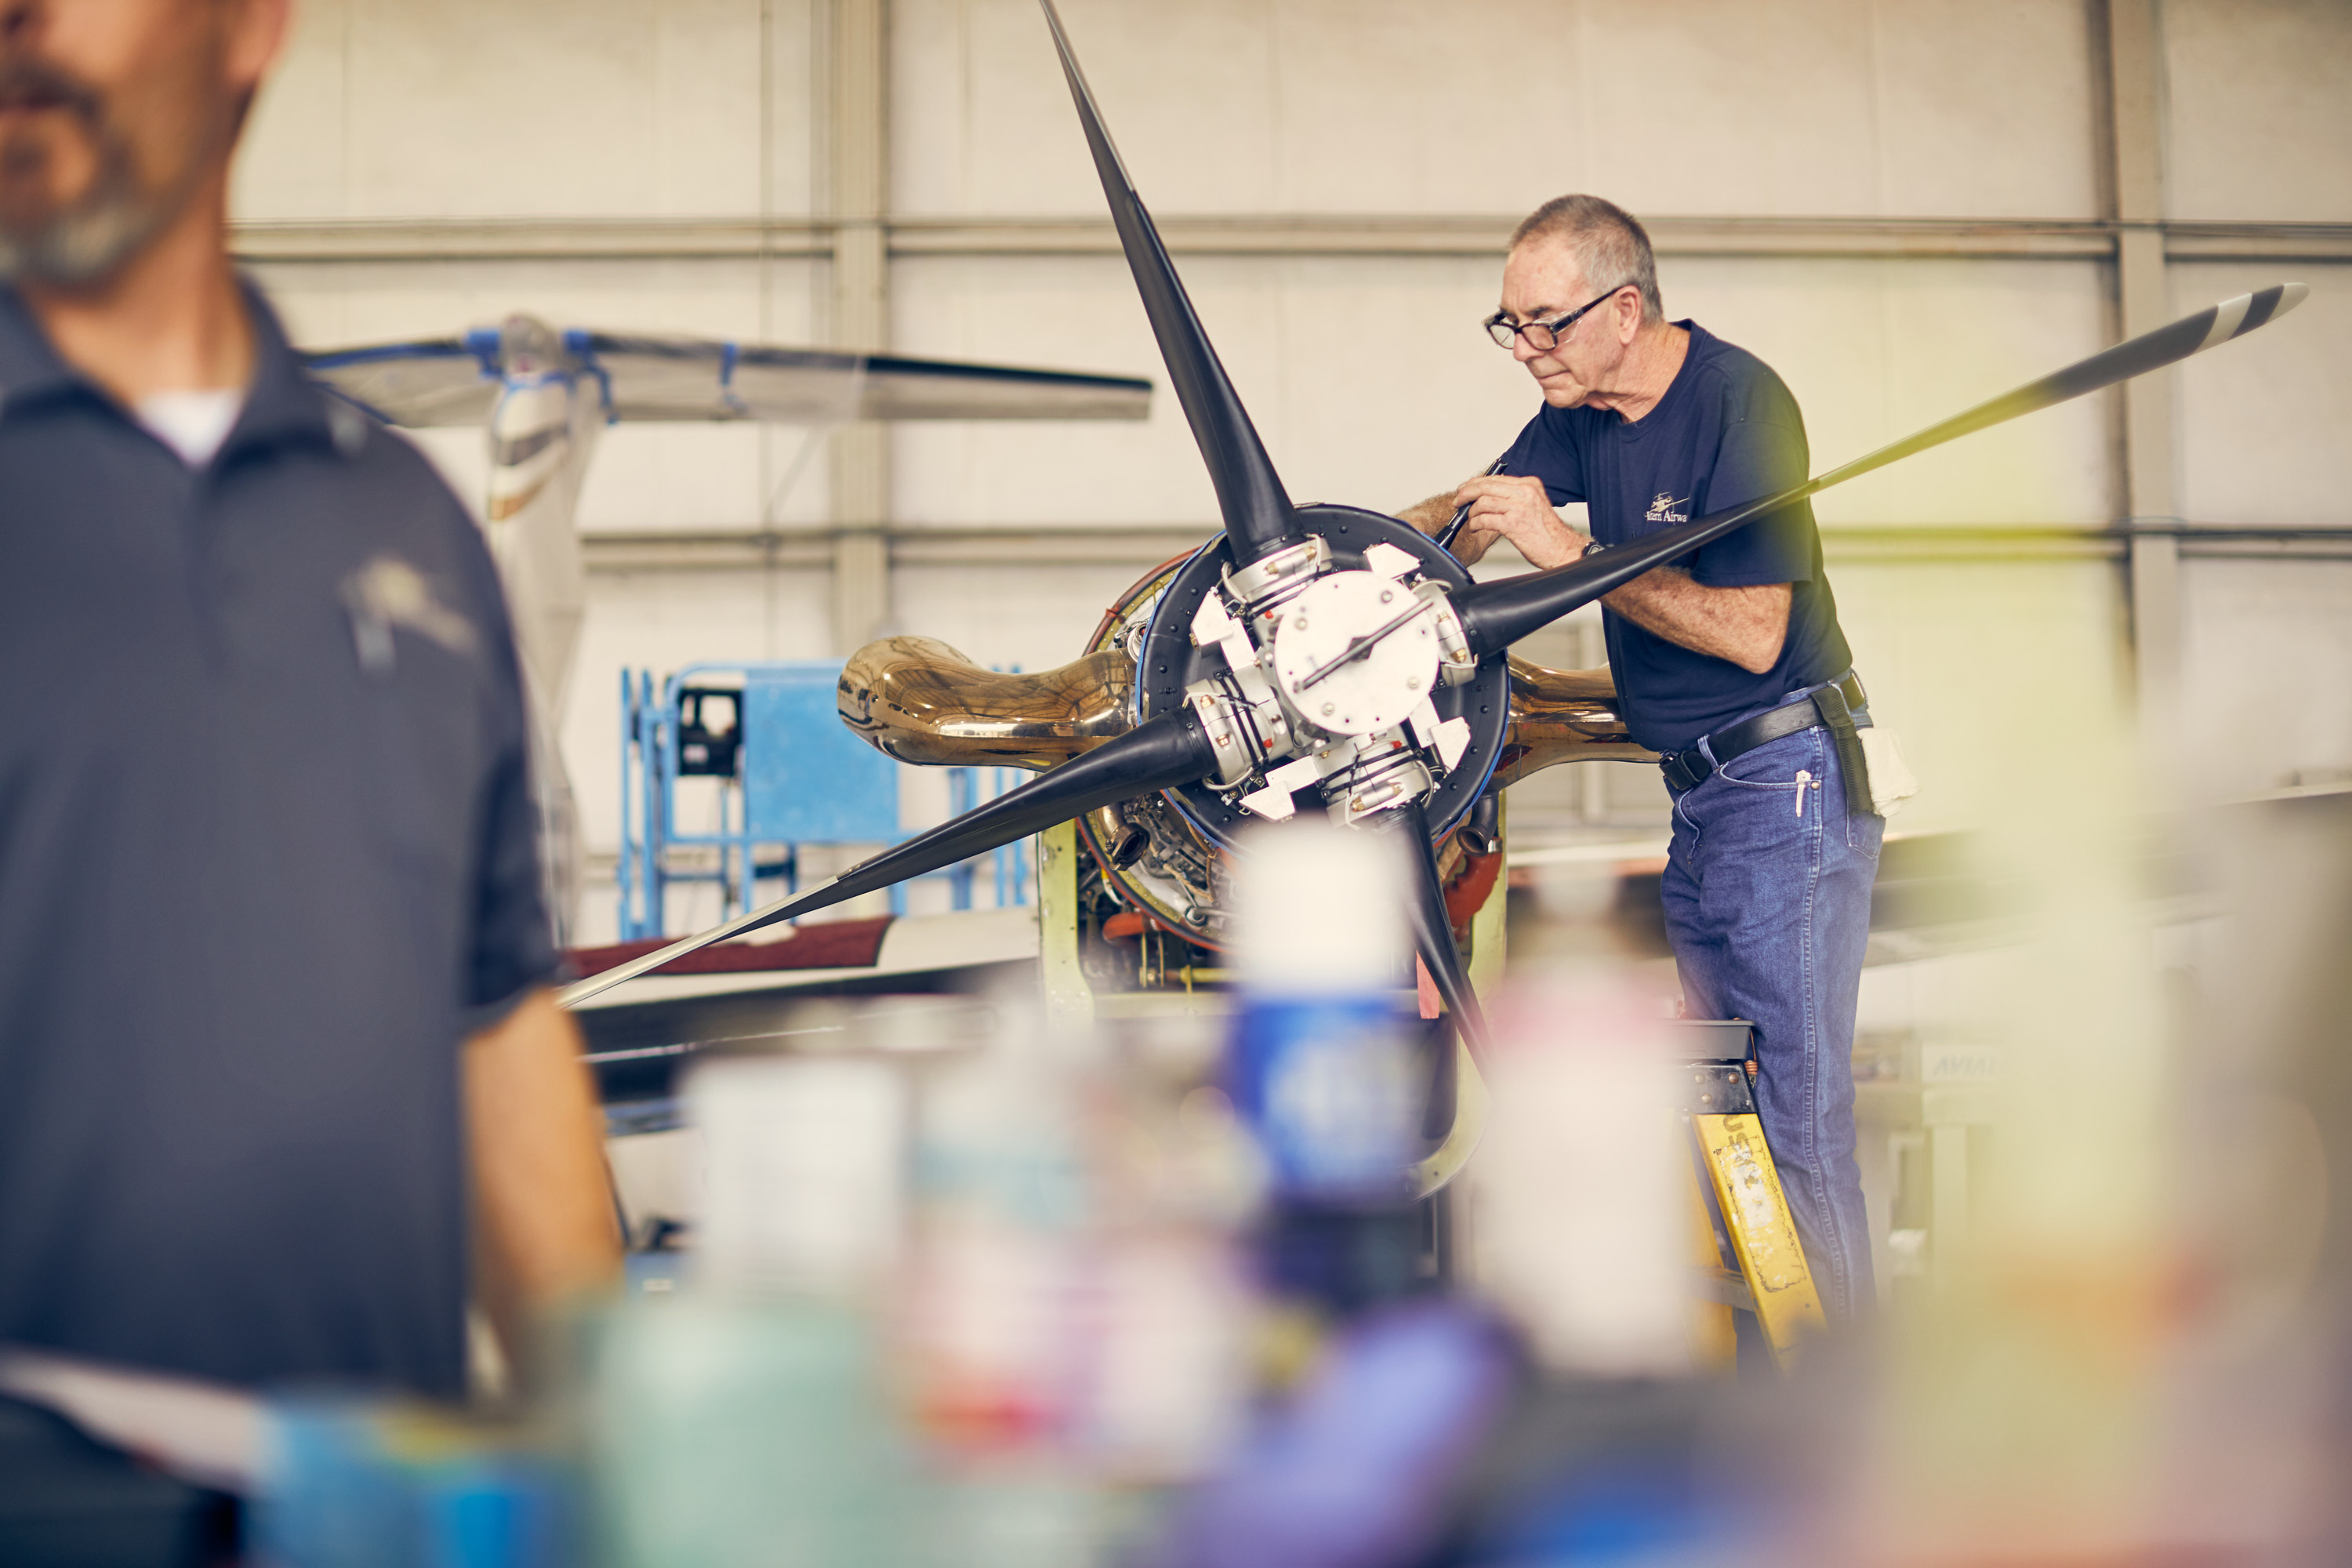 Industrial Photography | Airplane Mechanic